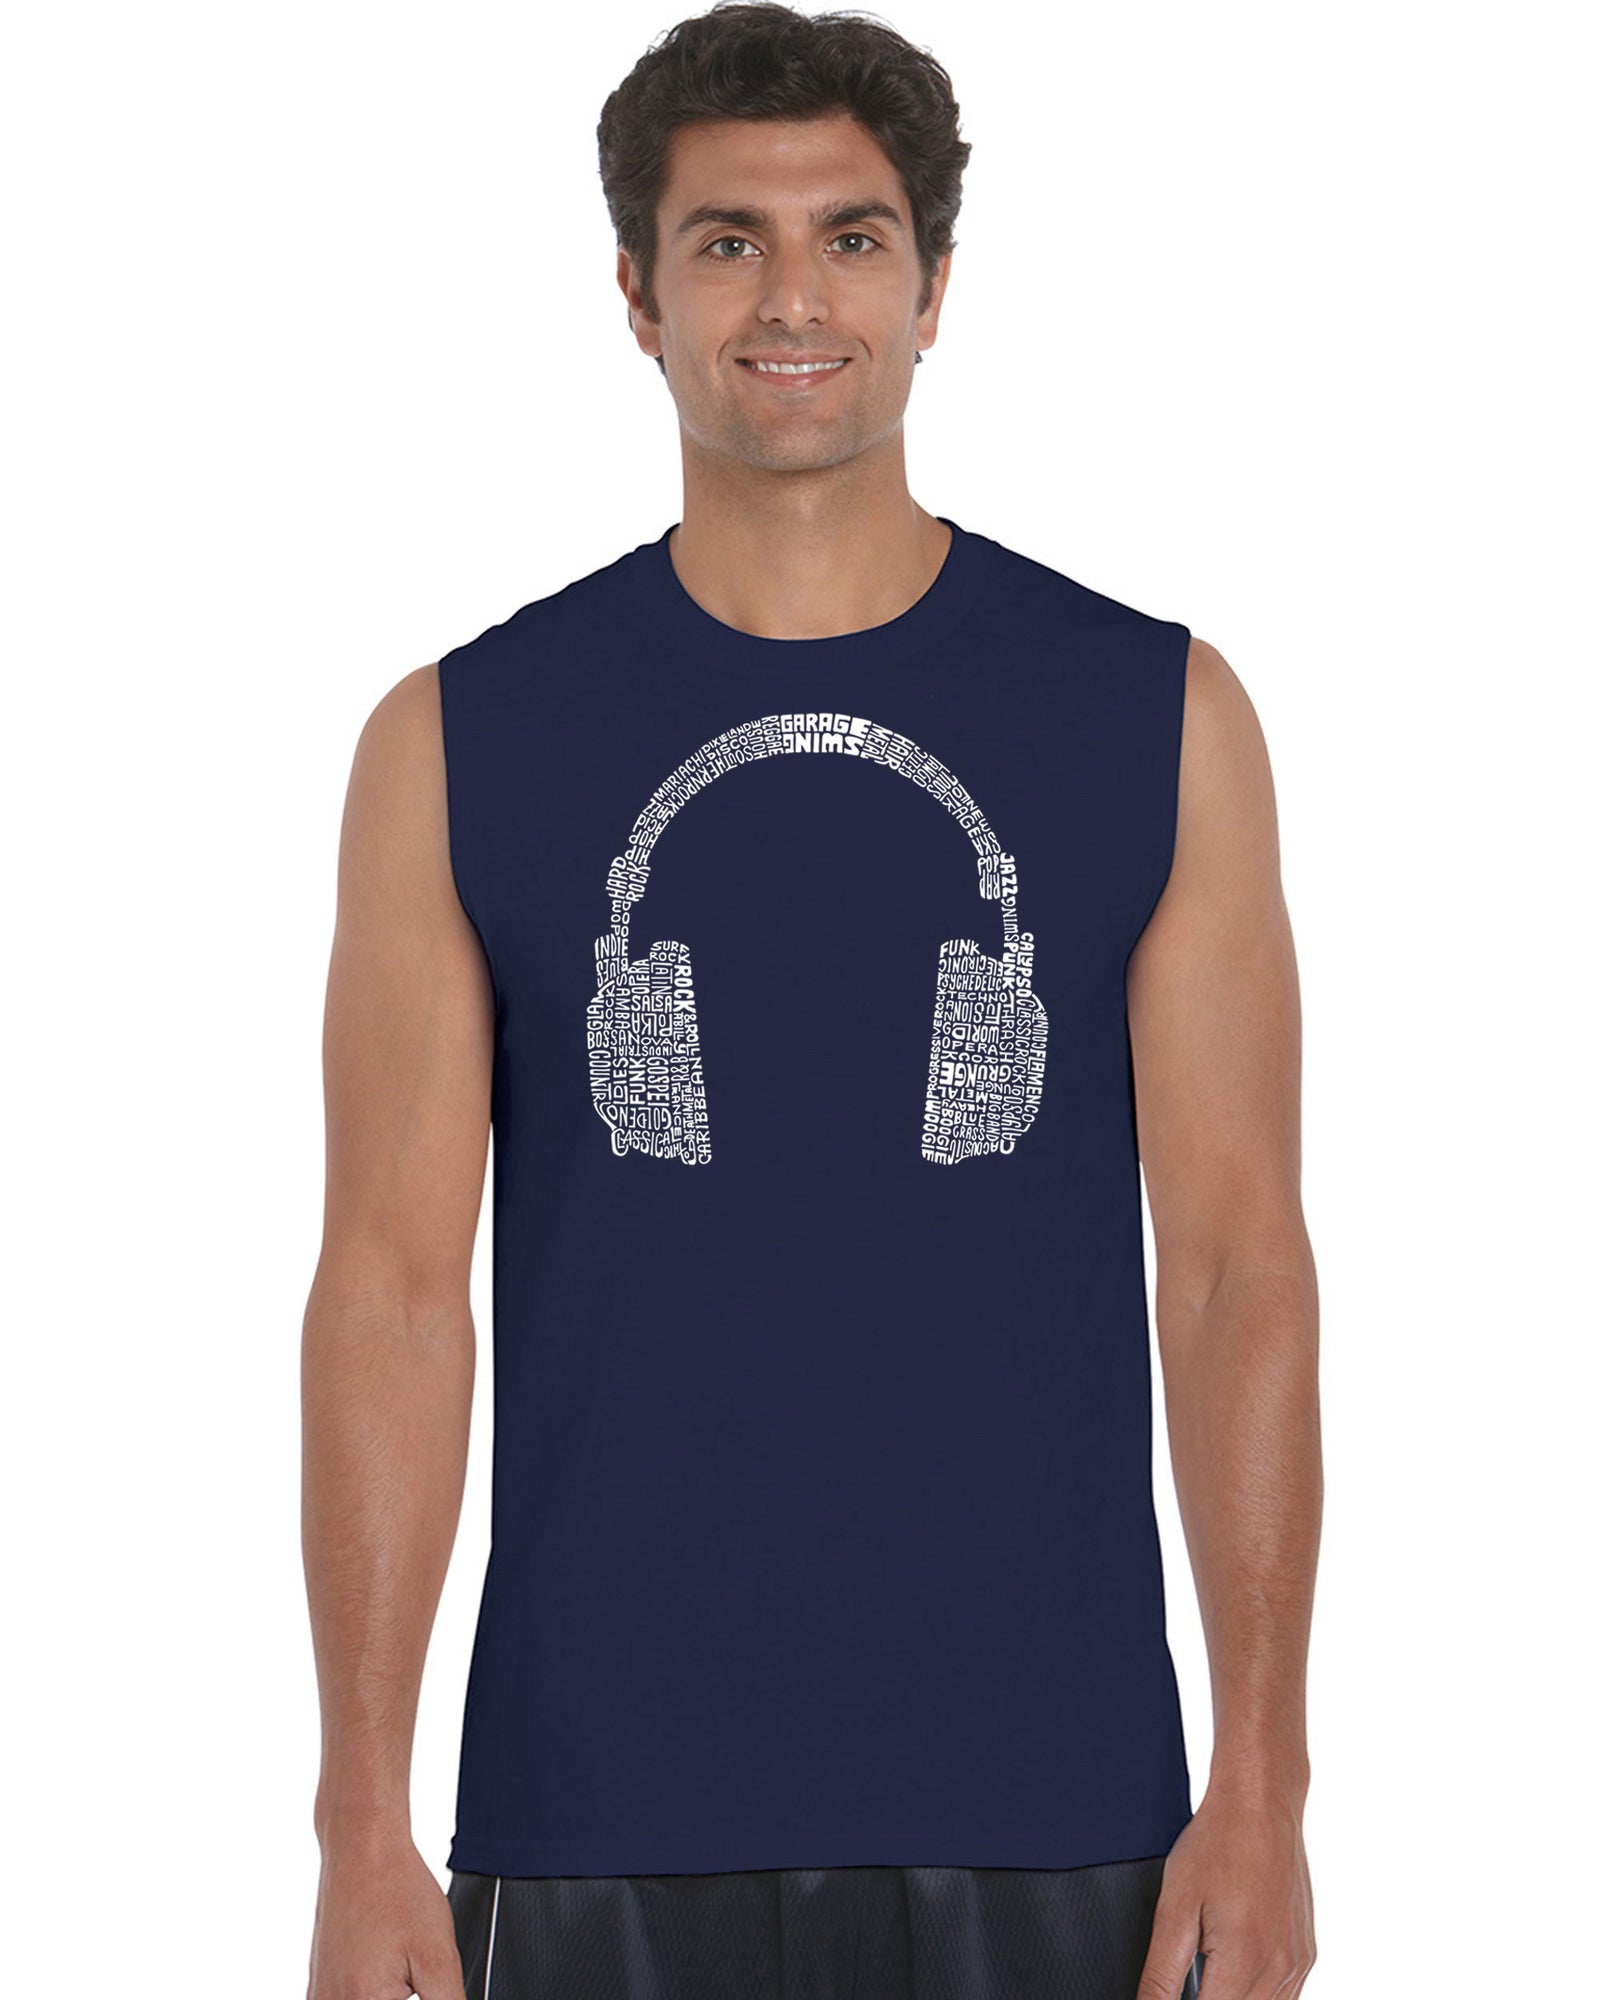 Men's Sleeveless T-shirt - 63 DIFFERENT GENRES OF MUSIC